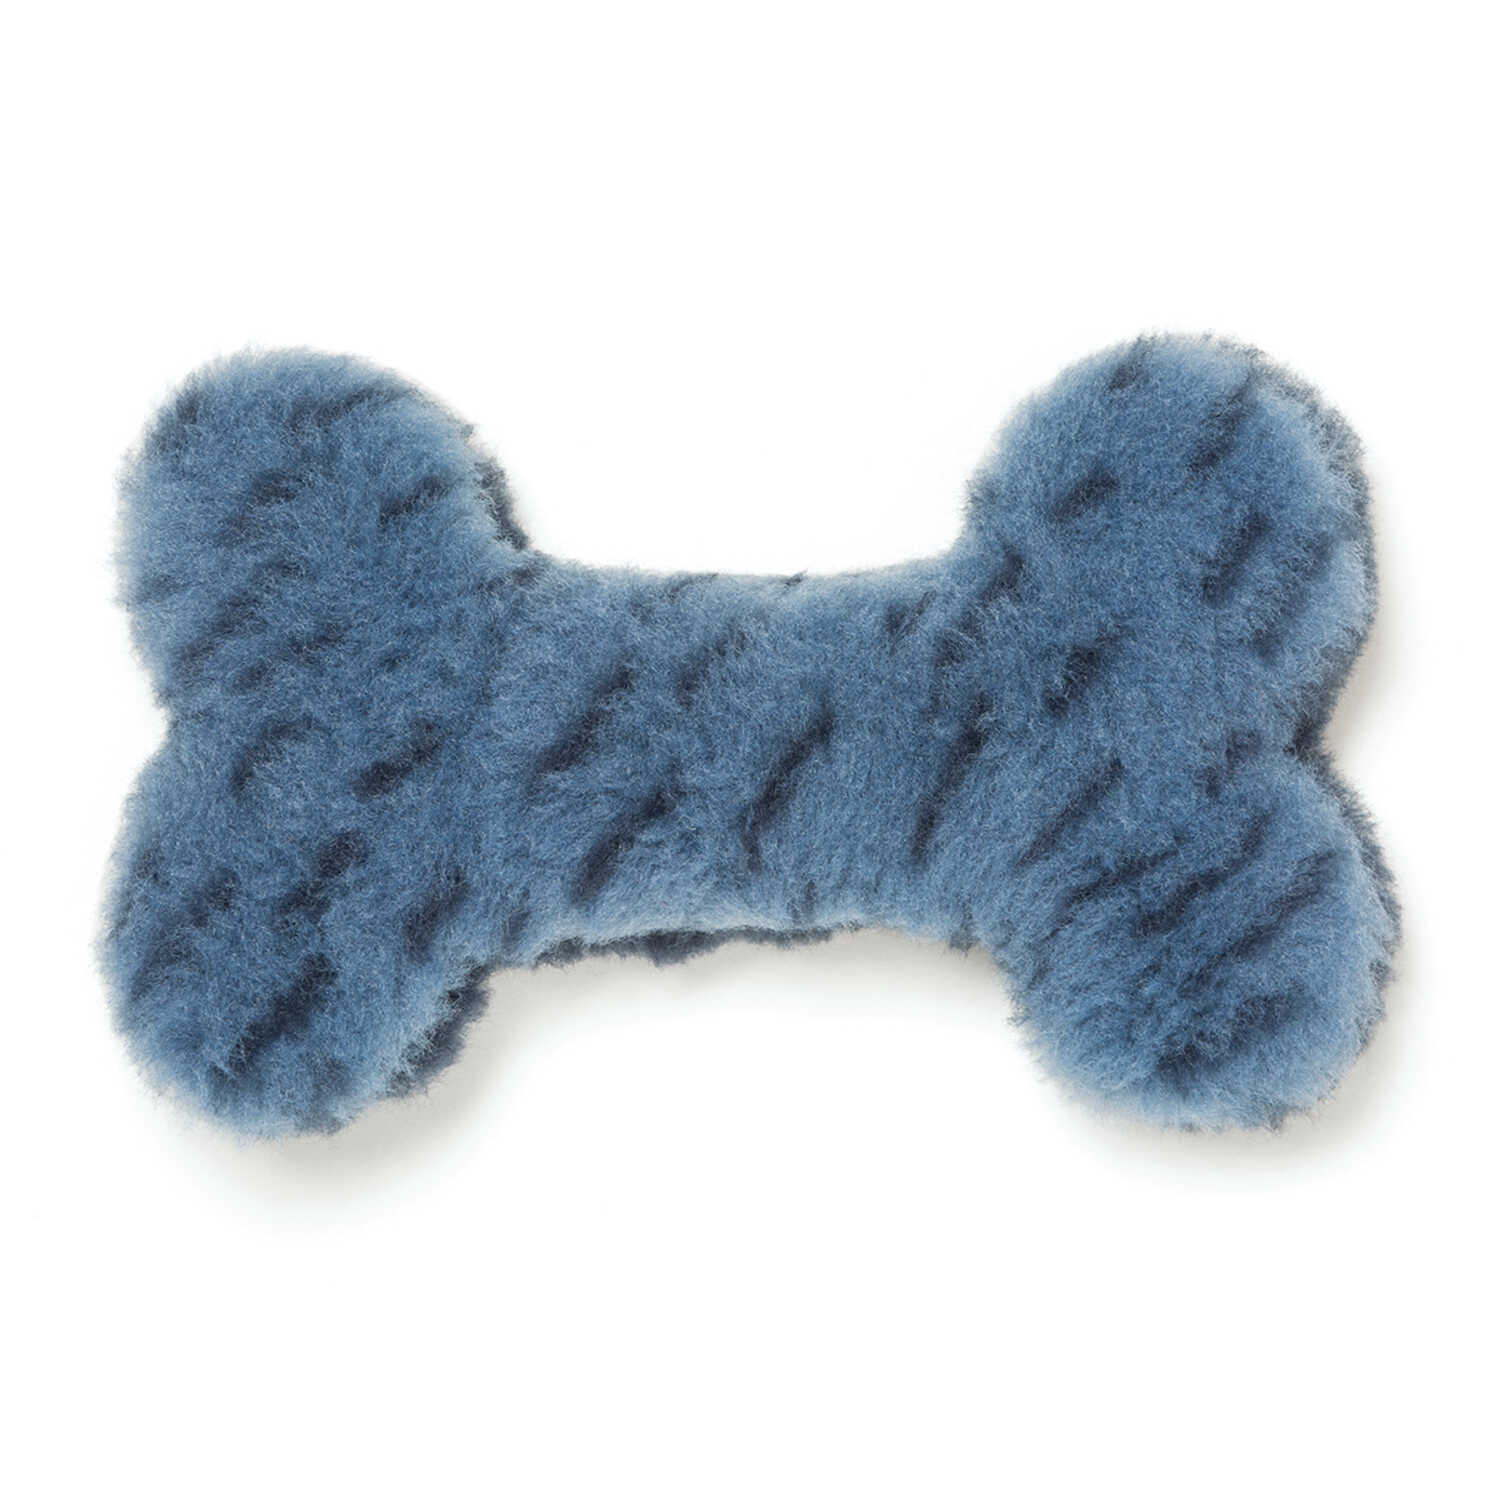 West Paw  Blue  Plush  Pet Toy  Small